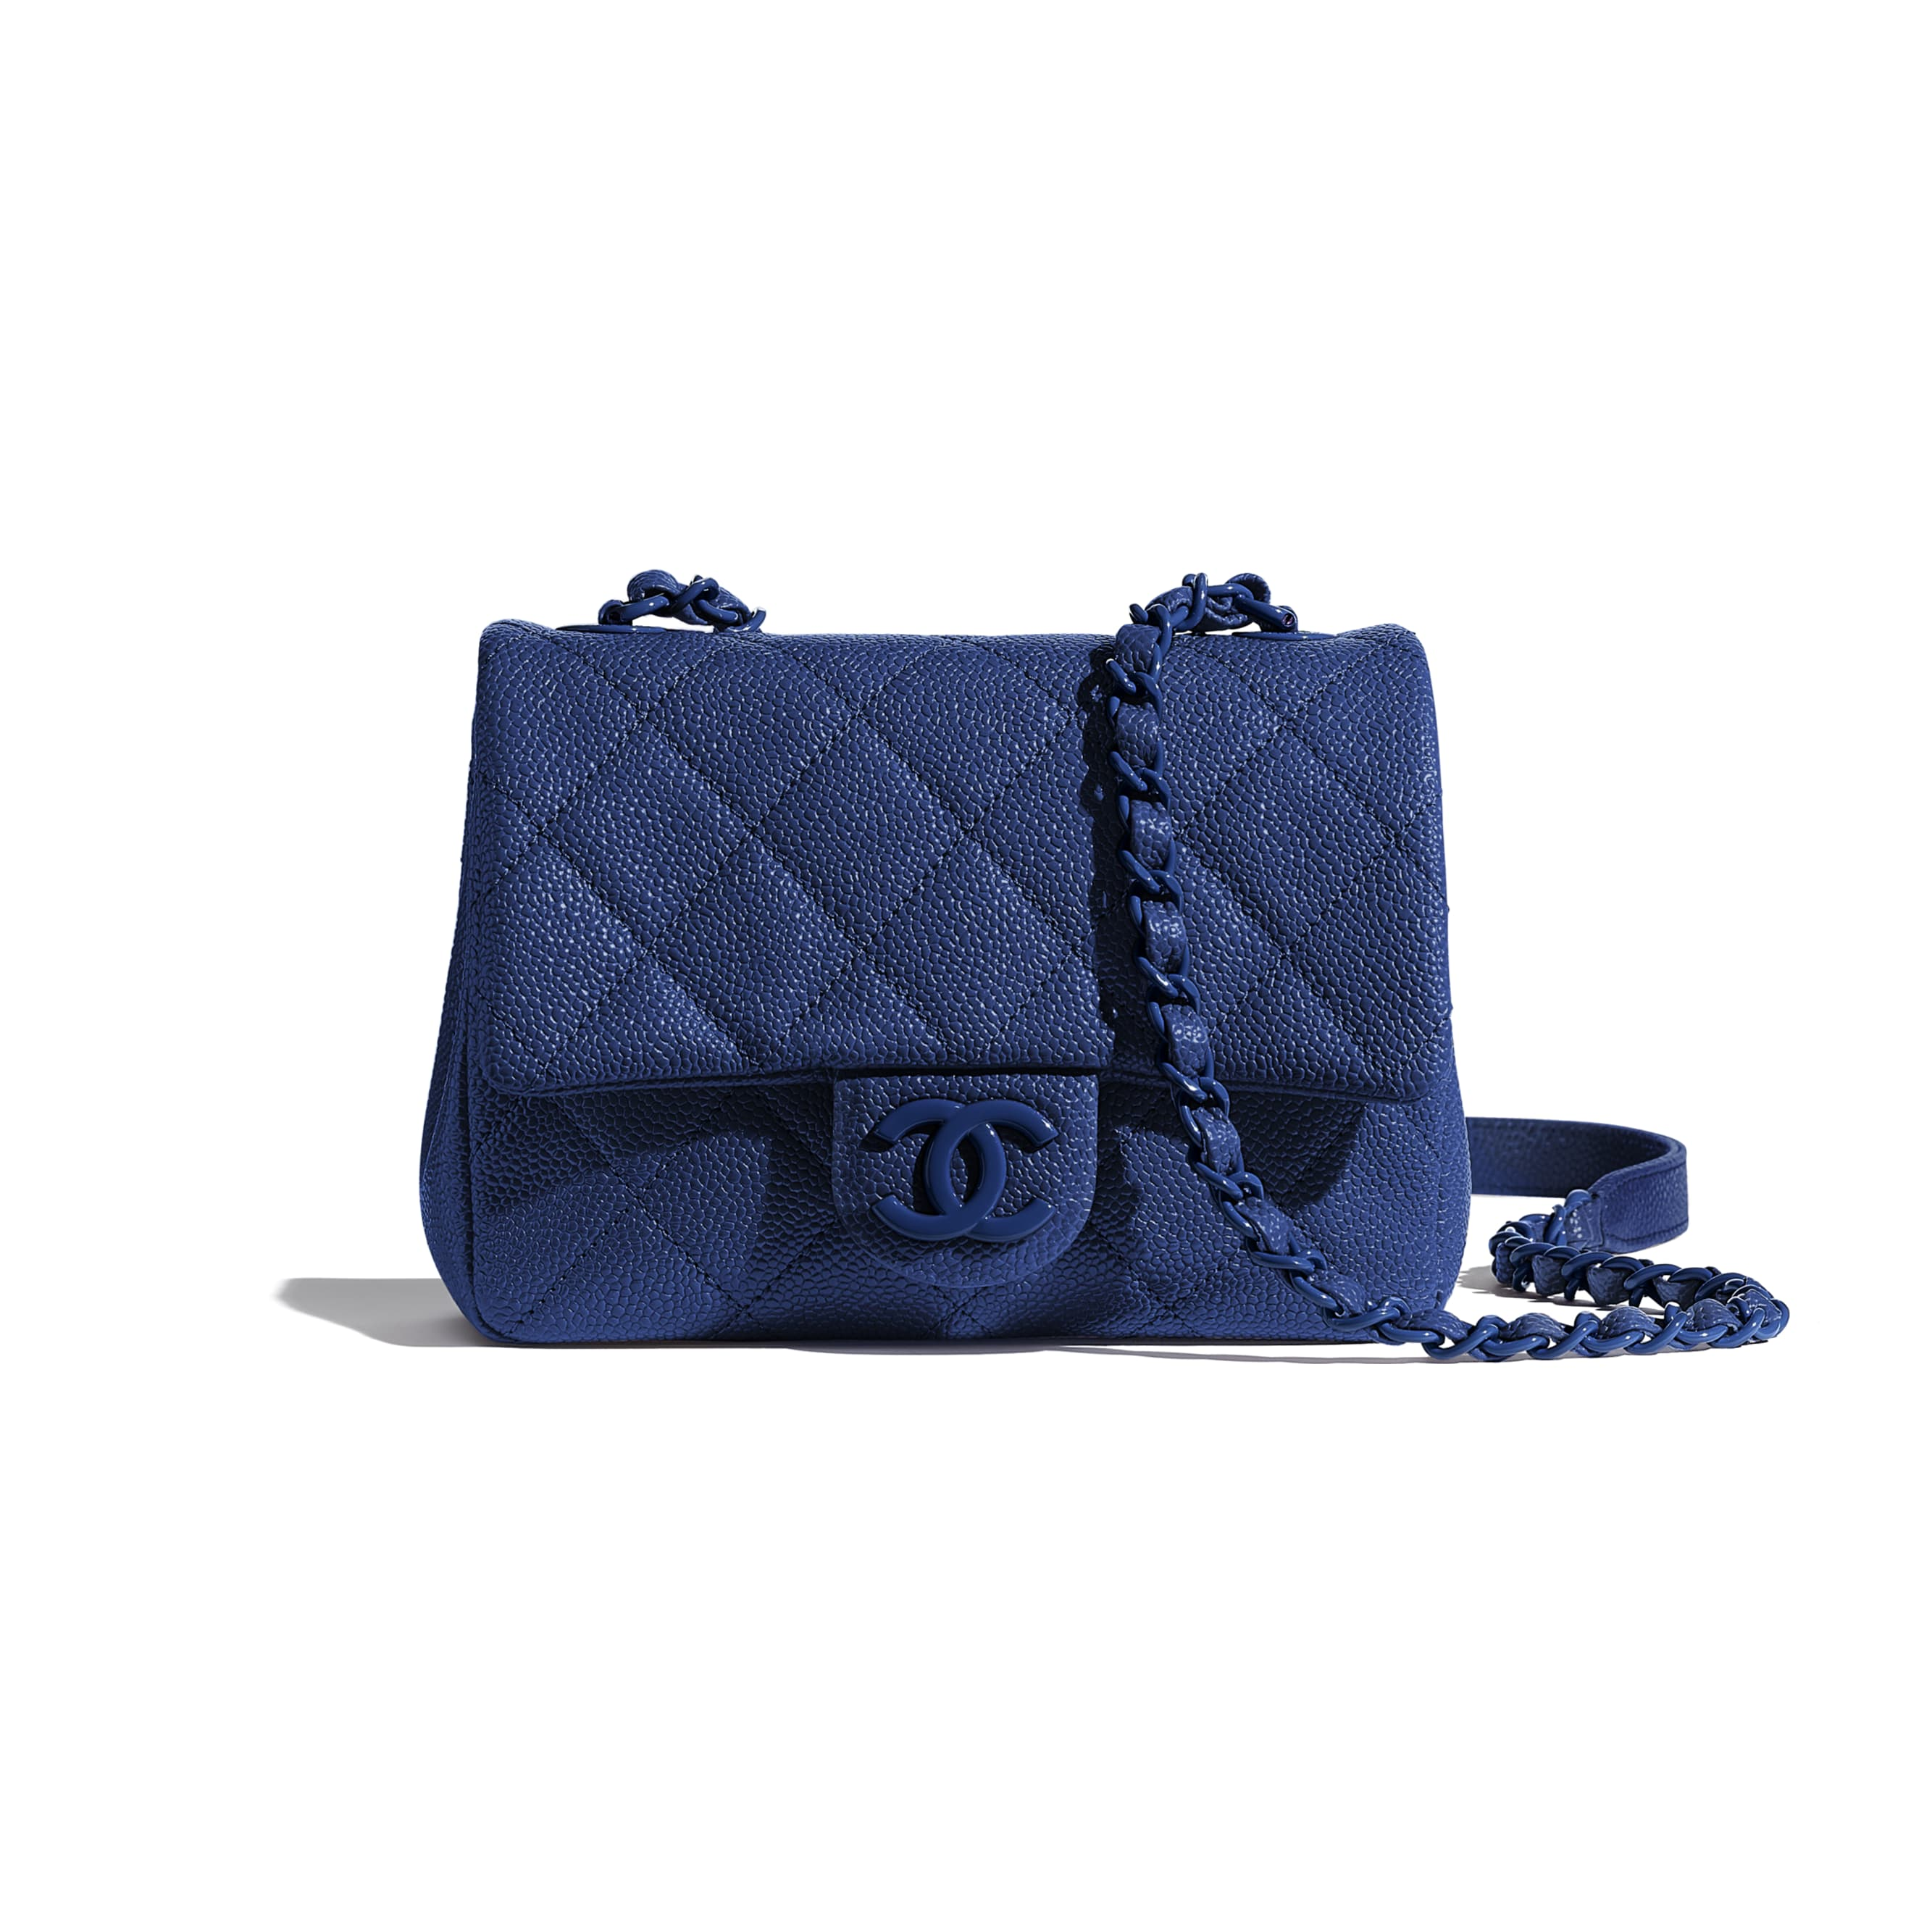 Flap Bag - Dark Blue - Grained Calfskin & Lacquered Metal - CHANEL - Default view - see standard sized version